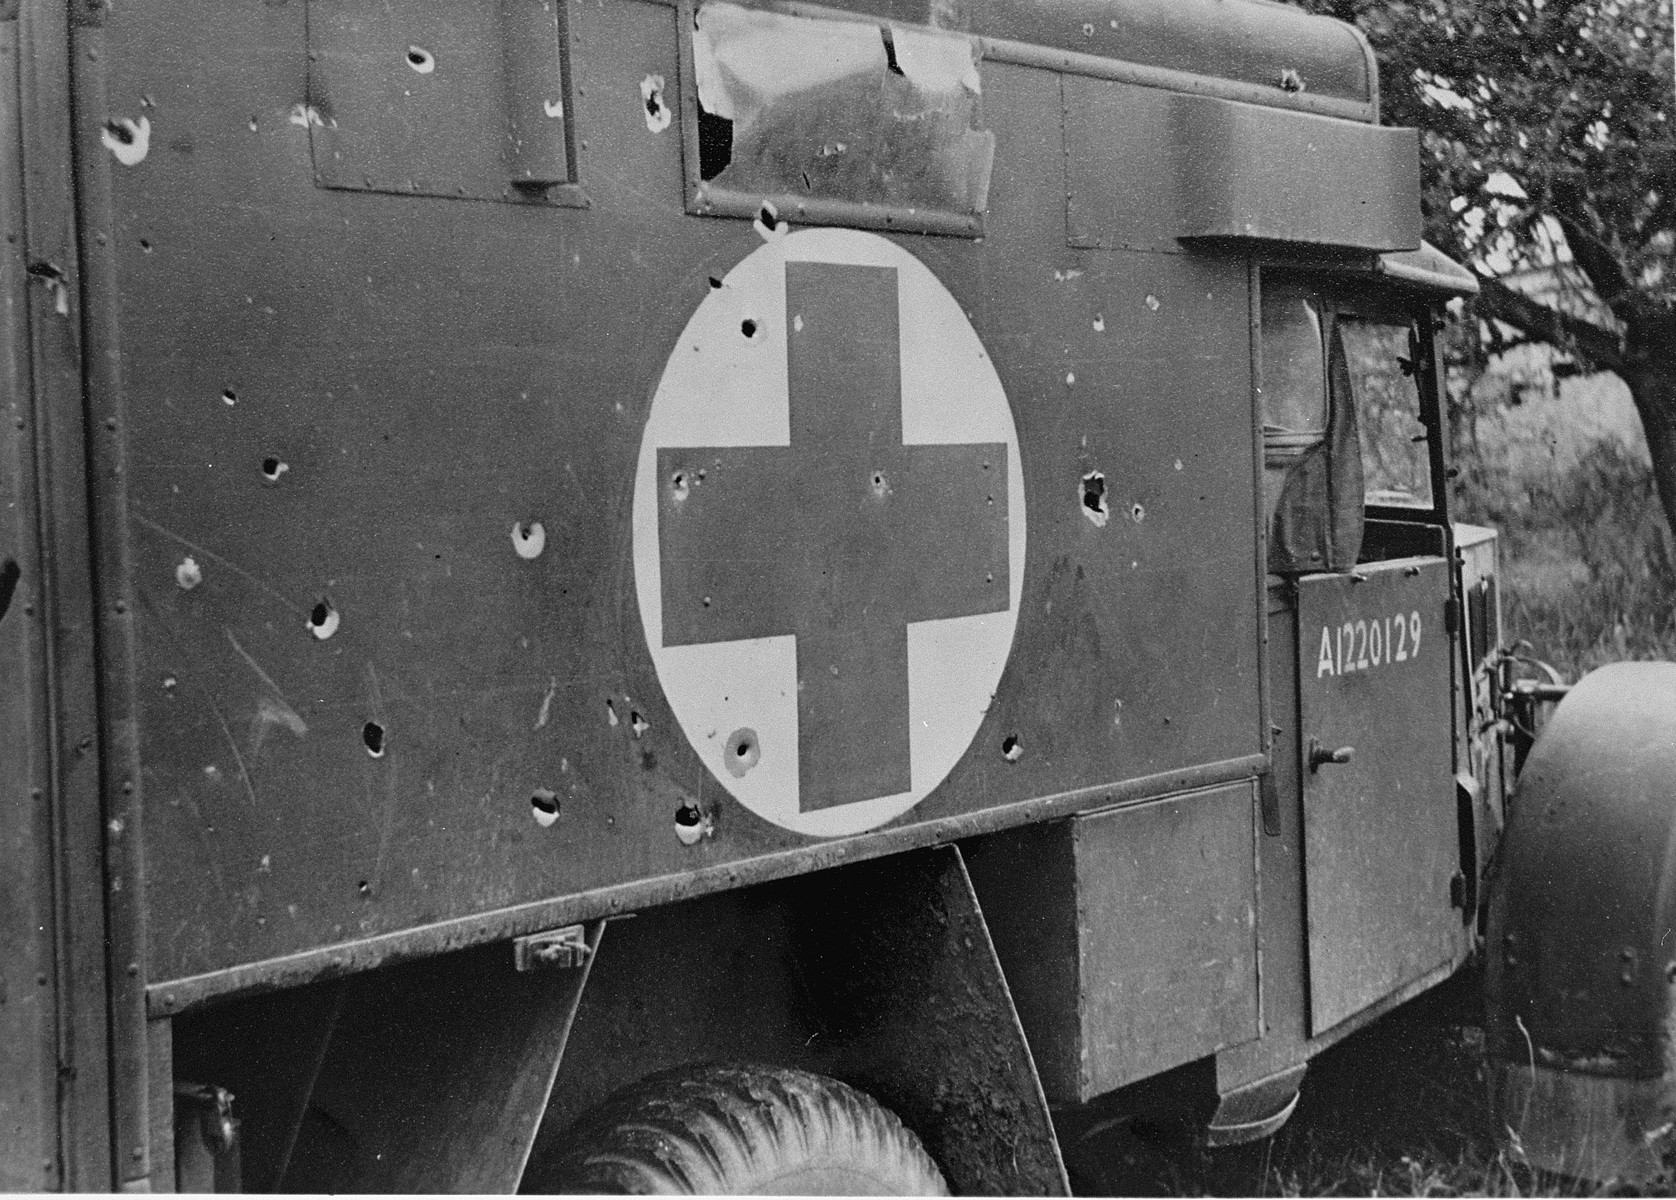 View of a British military ambulance with gun-fire damage.